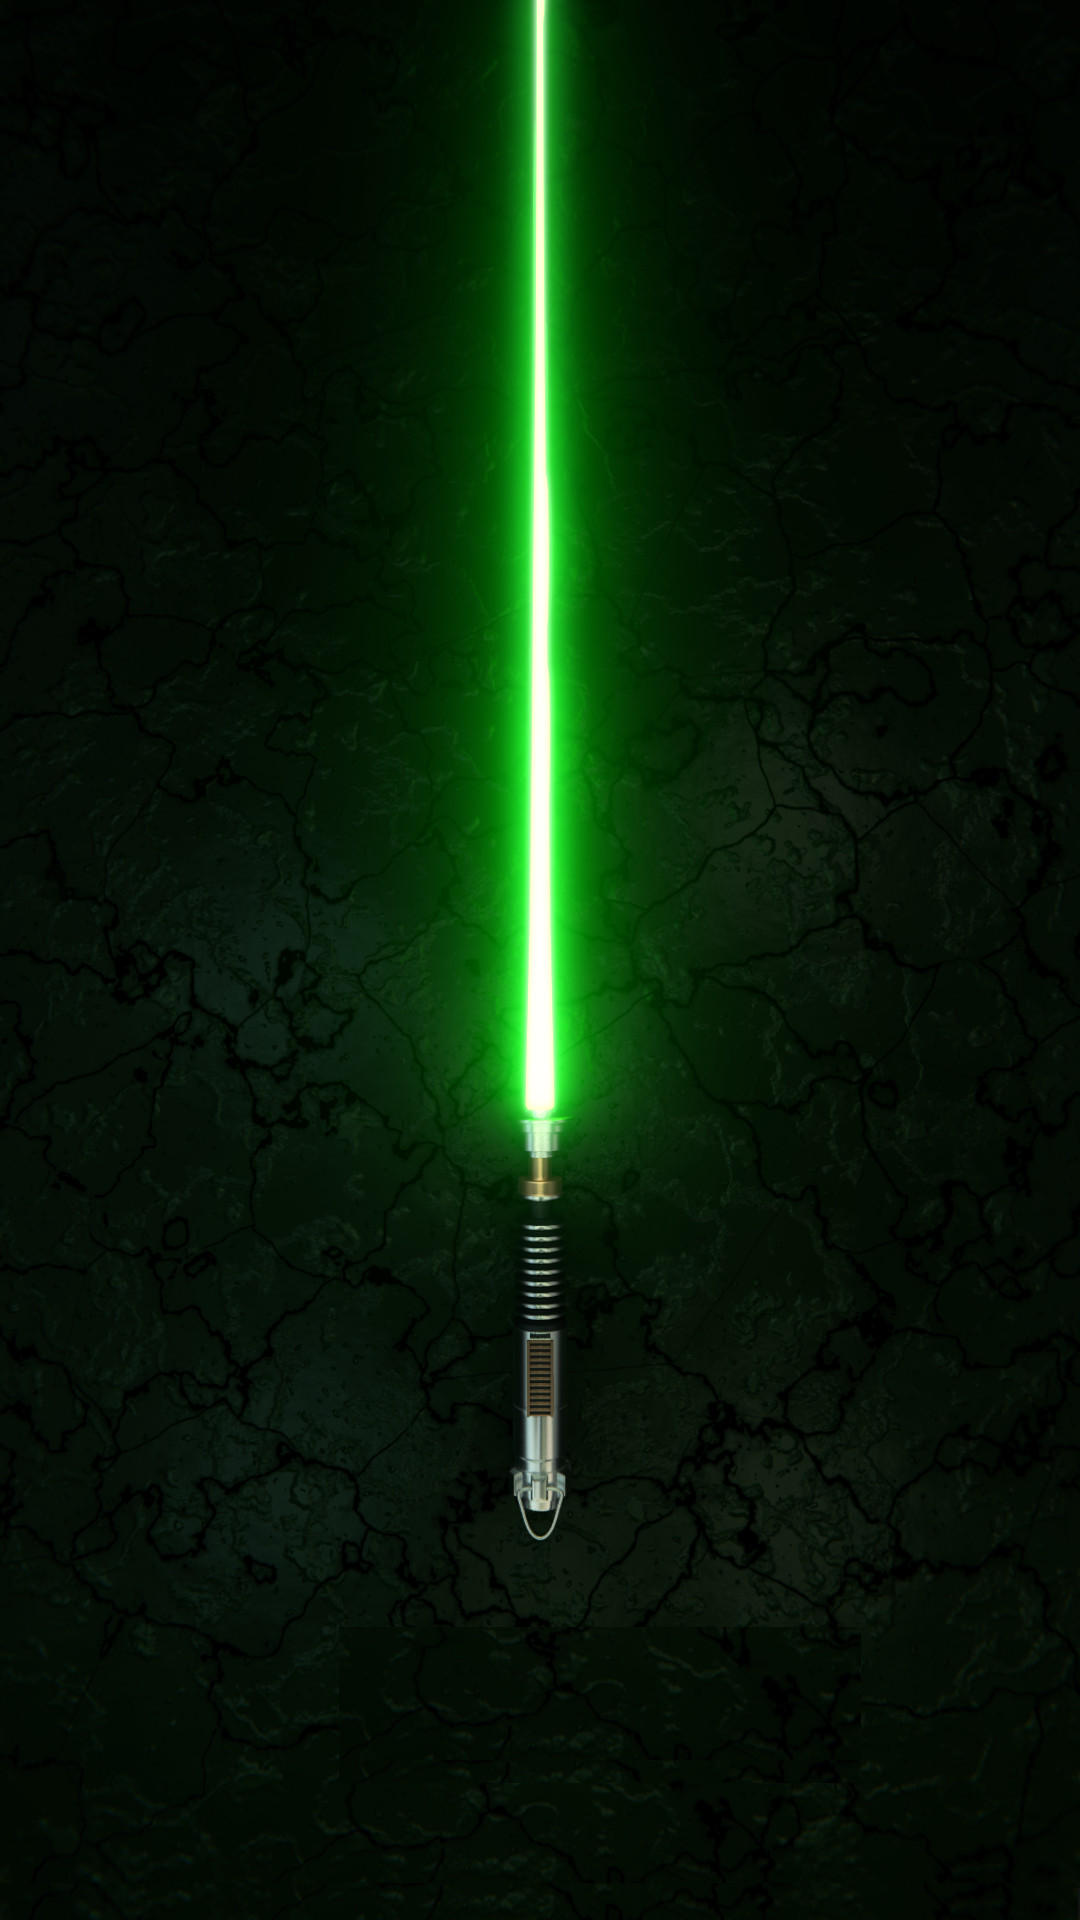 Wallpaper Star Wars red lightsaber midnight light